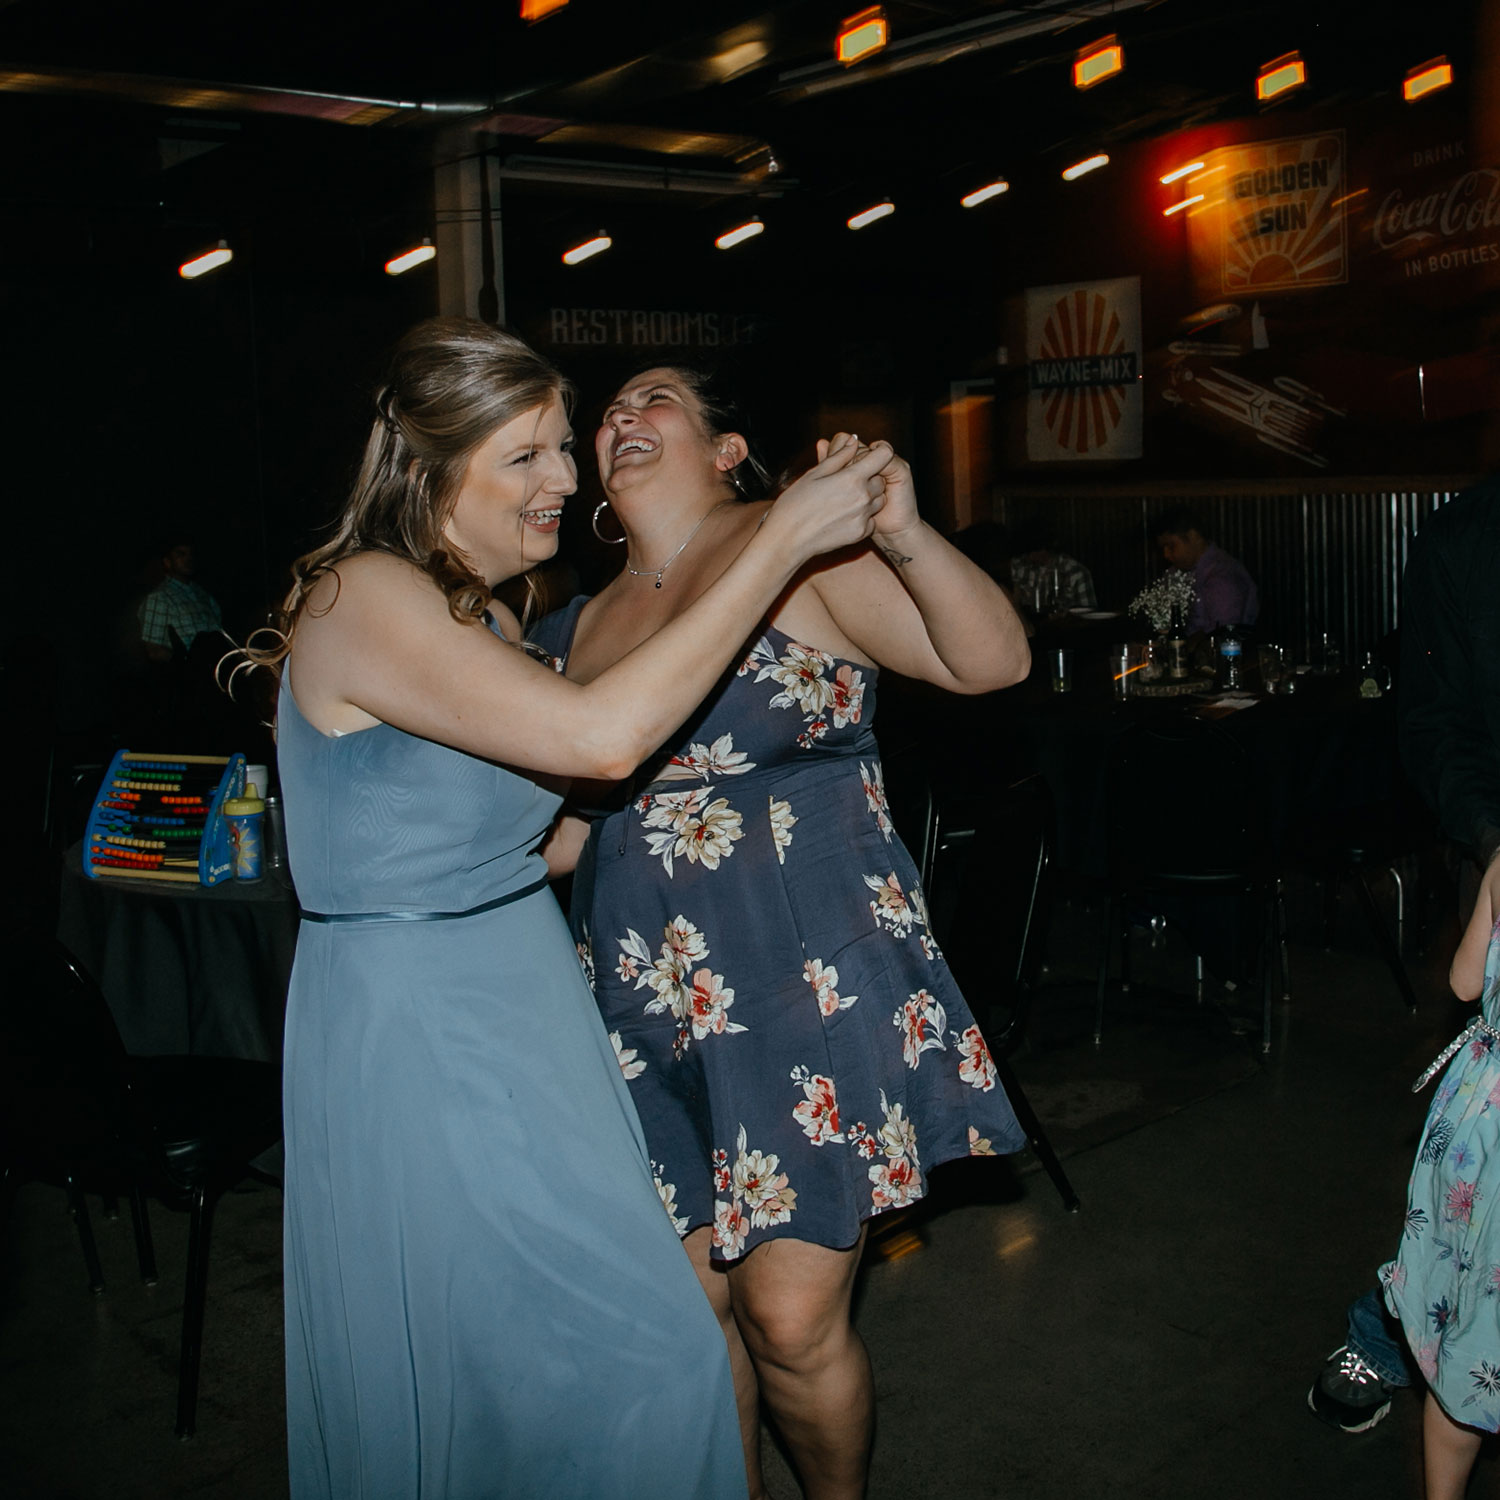 bridesmaid-dancing-decades-event-center-building-desmoines-iowa-raelyn-ramey-photography..jpg